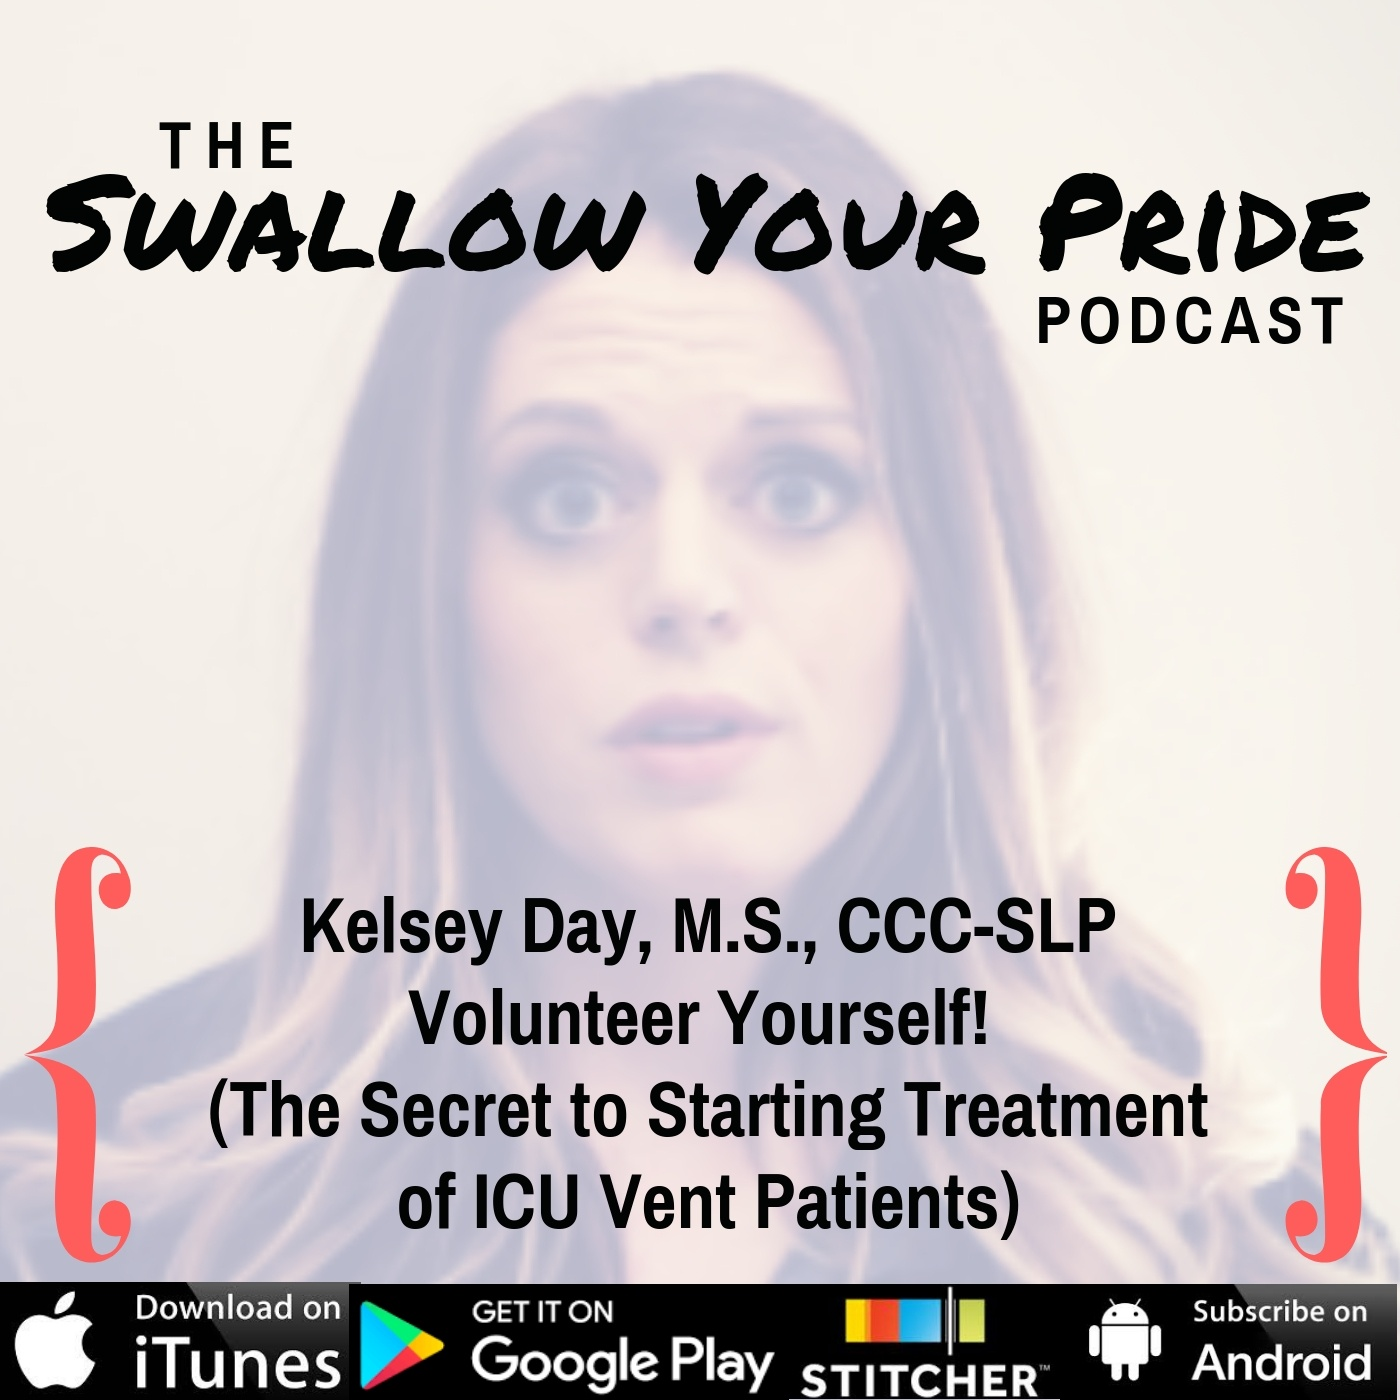 075 – Kelsey Day M.S., CCC-SLP  – Volunteer Yourself! (The Secret to Starting Treatment of ICU Vent Patients)